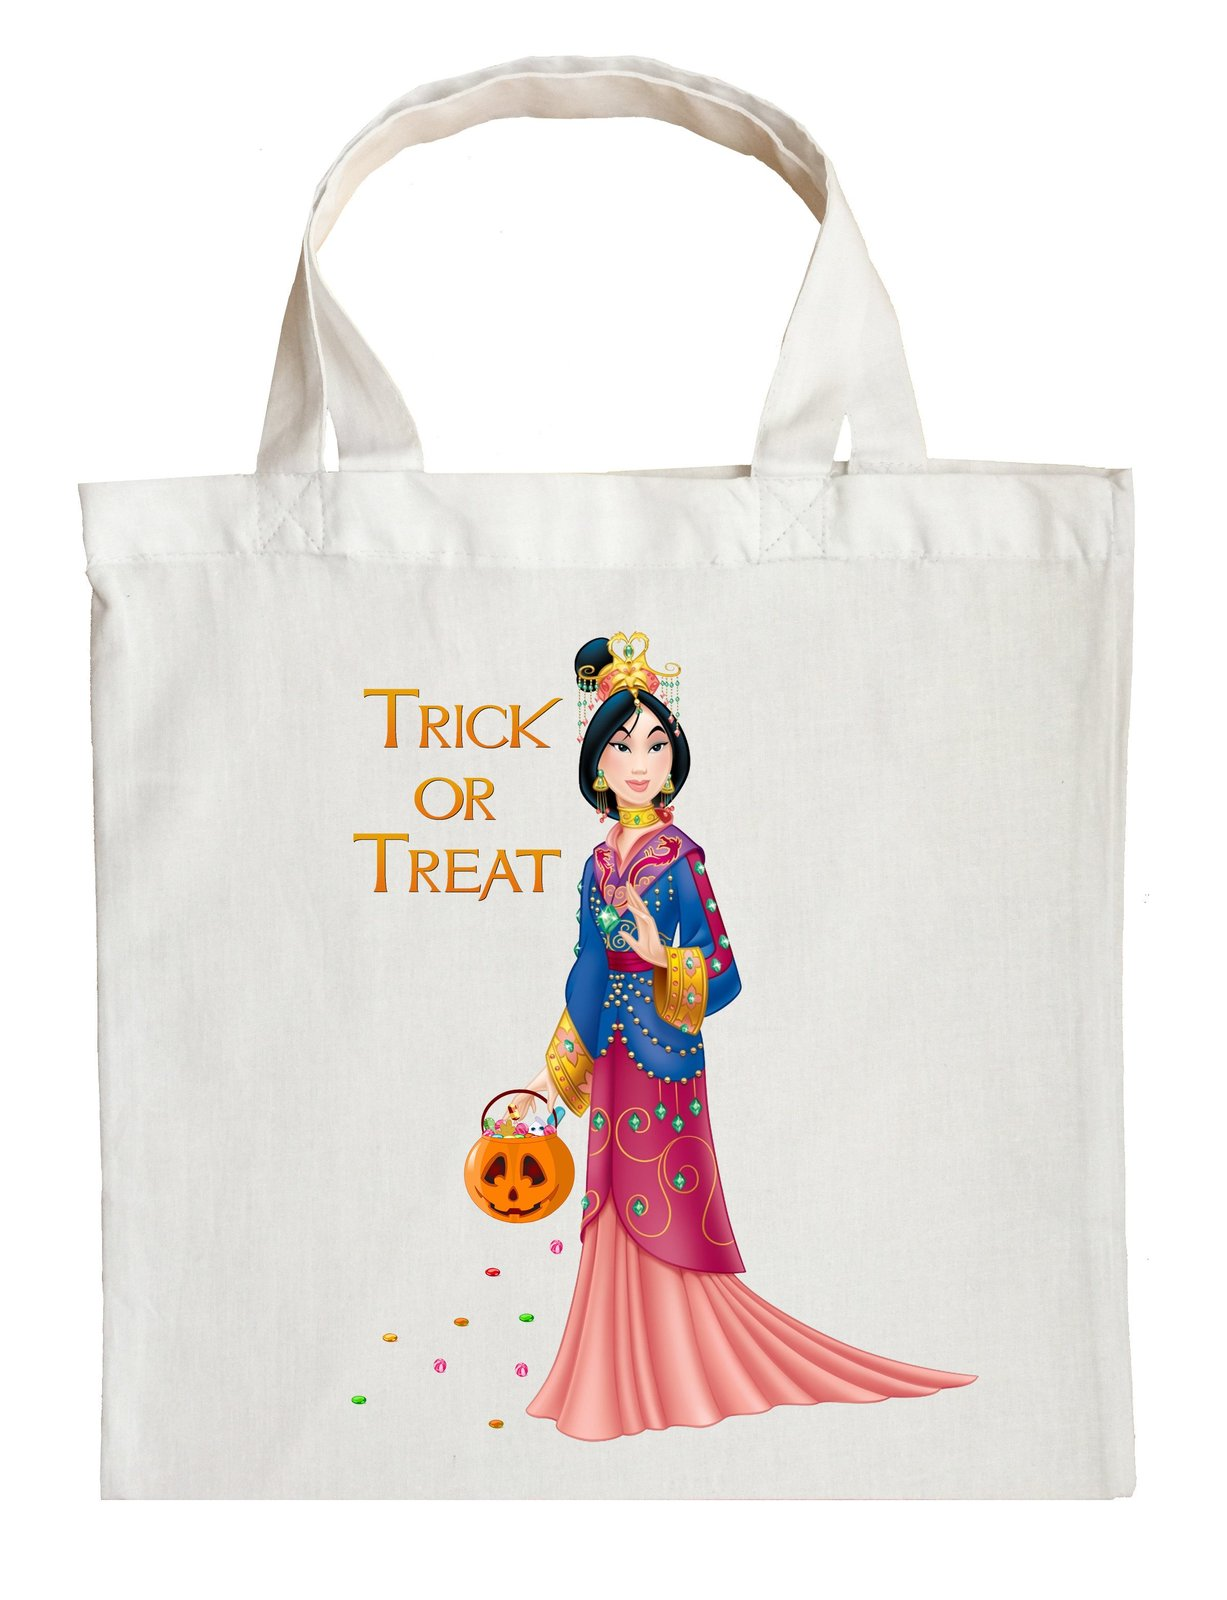 Mulan Trick or Treat Bag - Personalized Mulan Halloween Bag